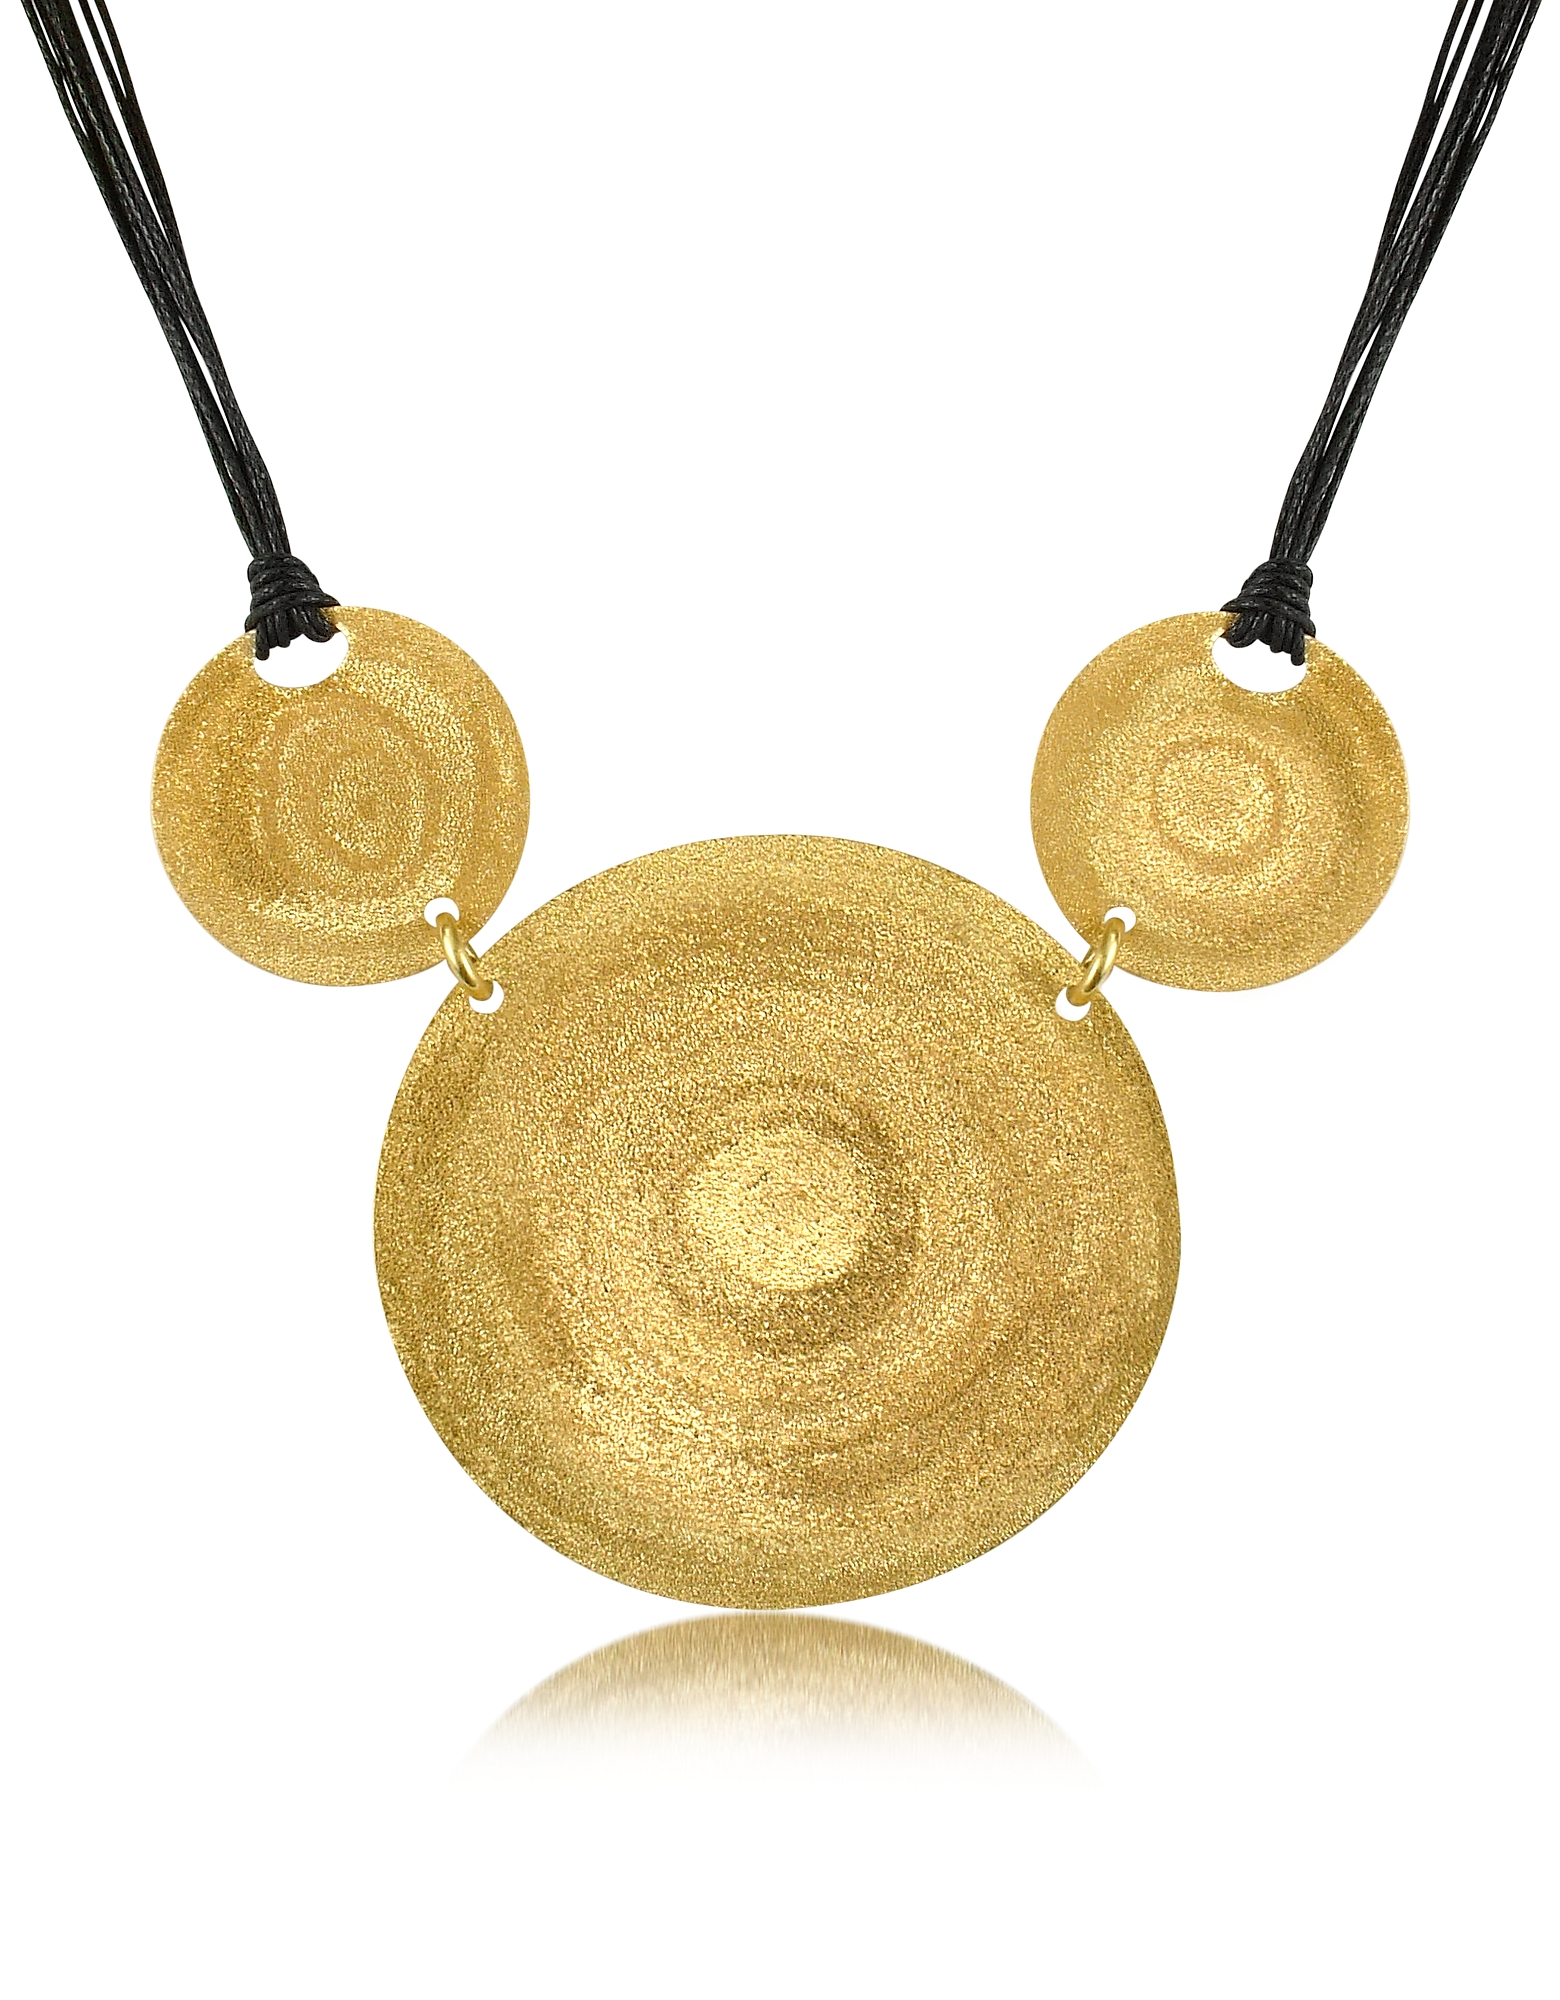 Stefano Patriarchi Necklaces, Golden Silver Etched Triple Round Pendant w/Leather Lace